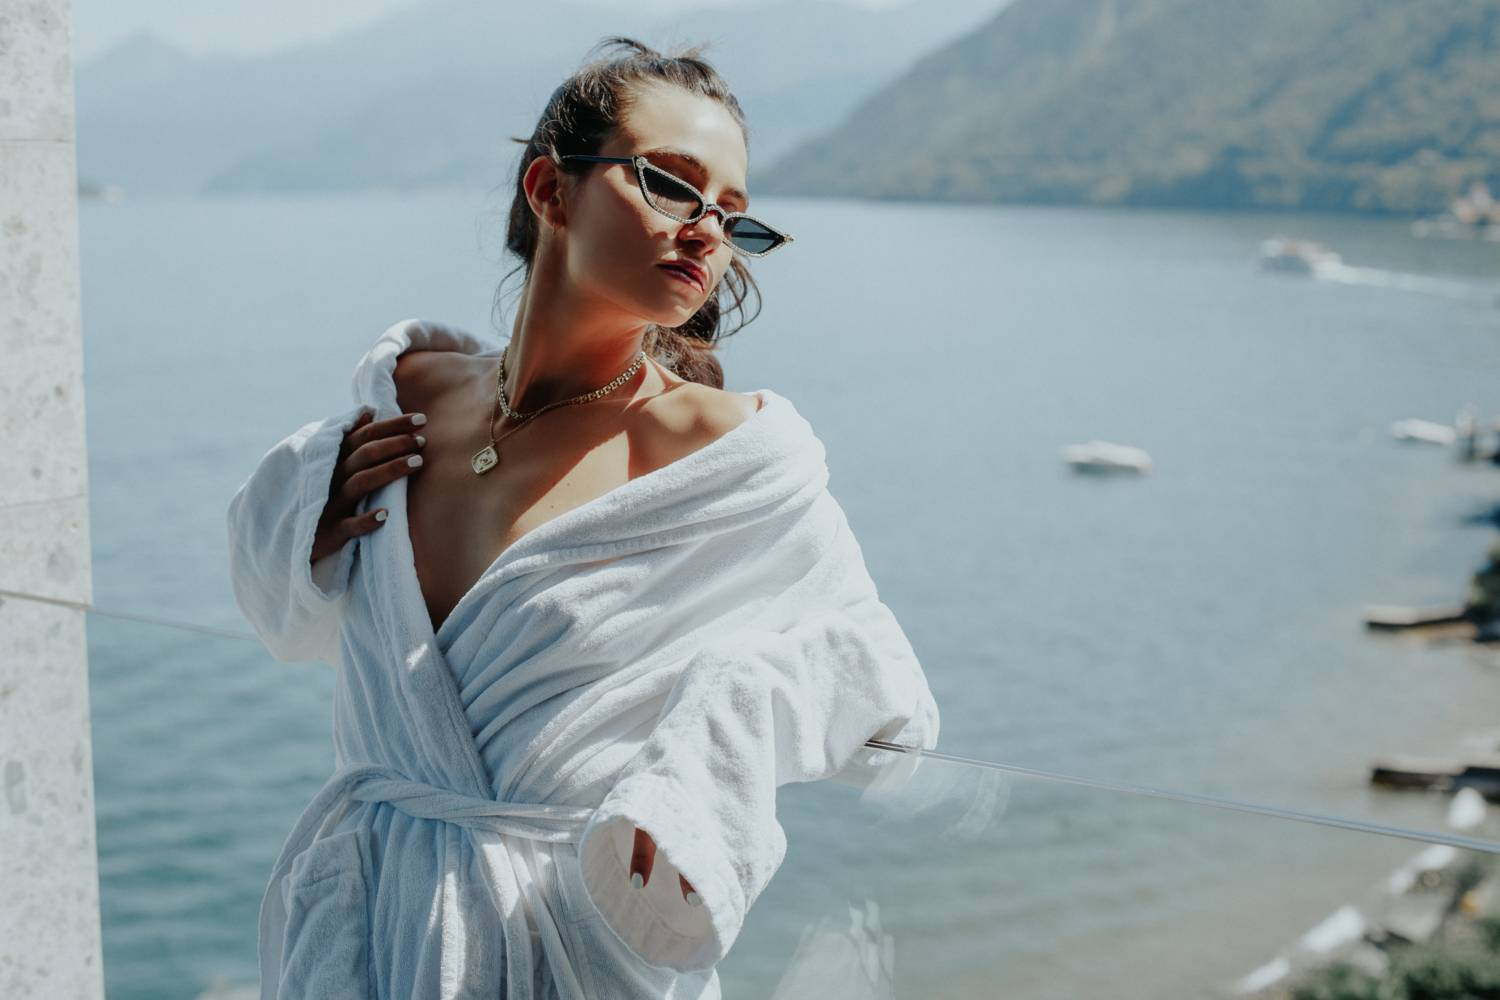 The Best Modern Lake Como Hotel You Need To Experience: Filario Hotel by Amy Marietta